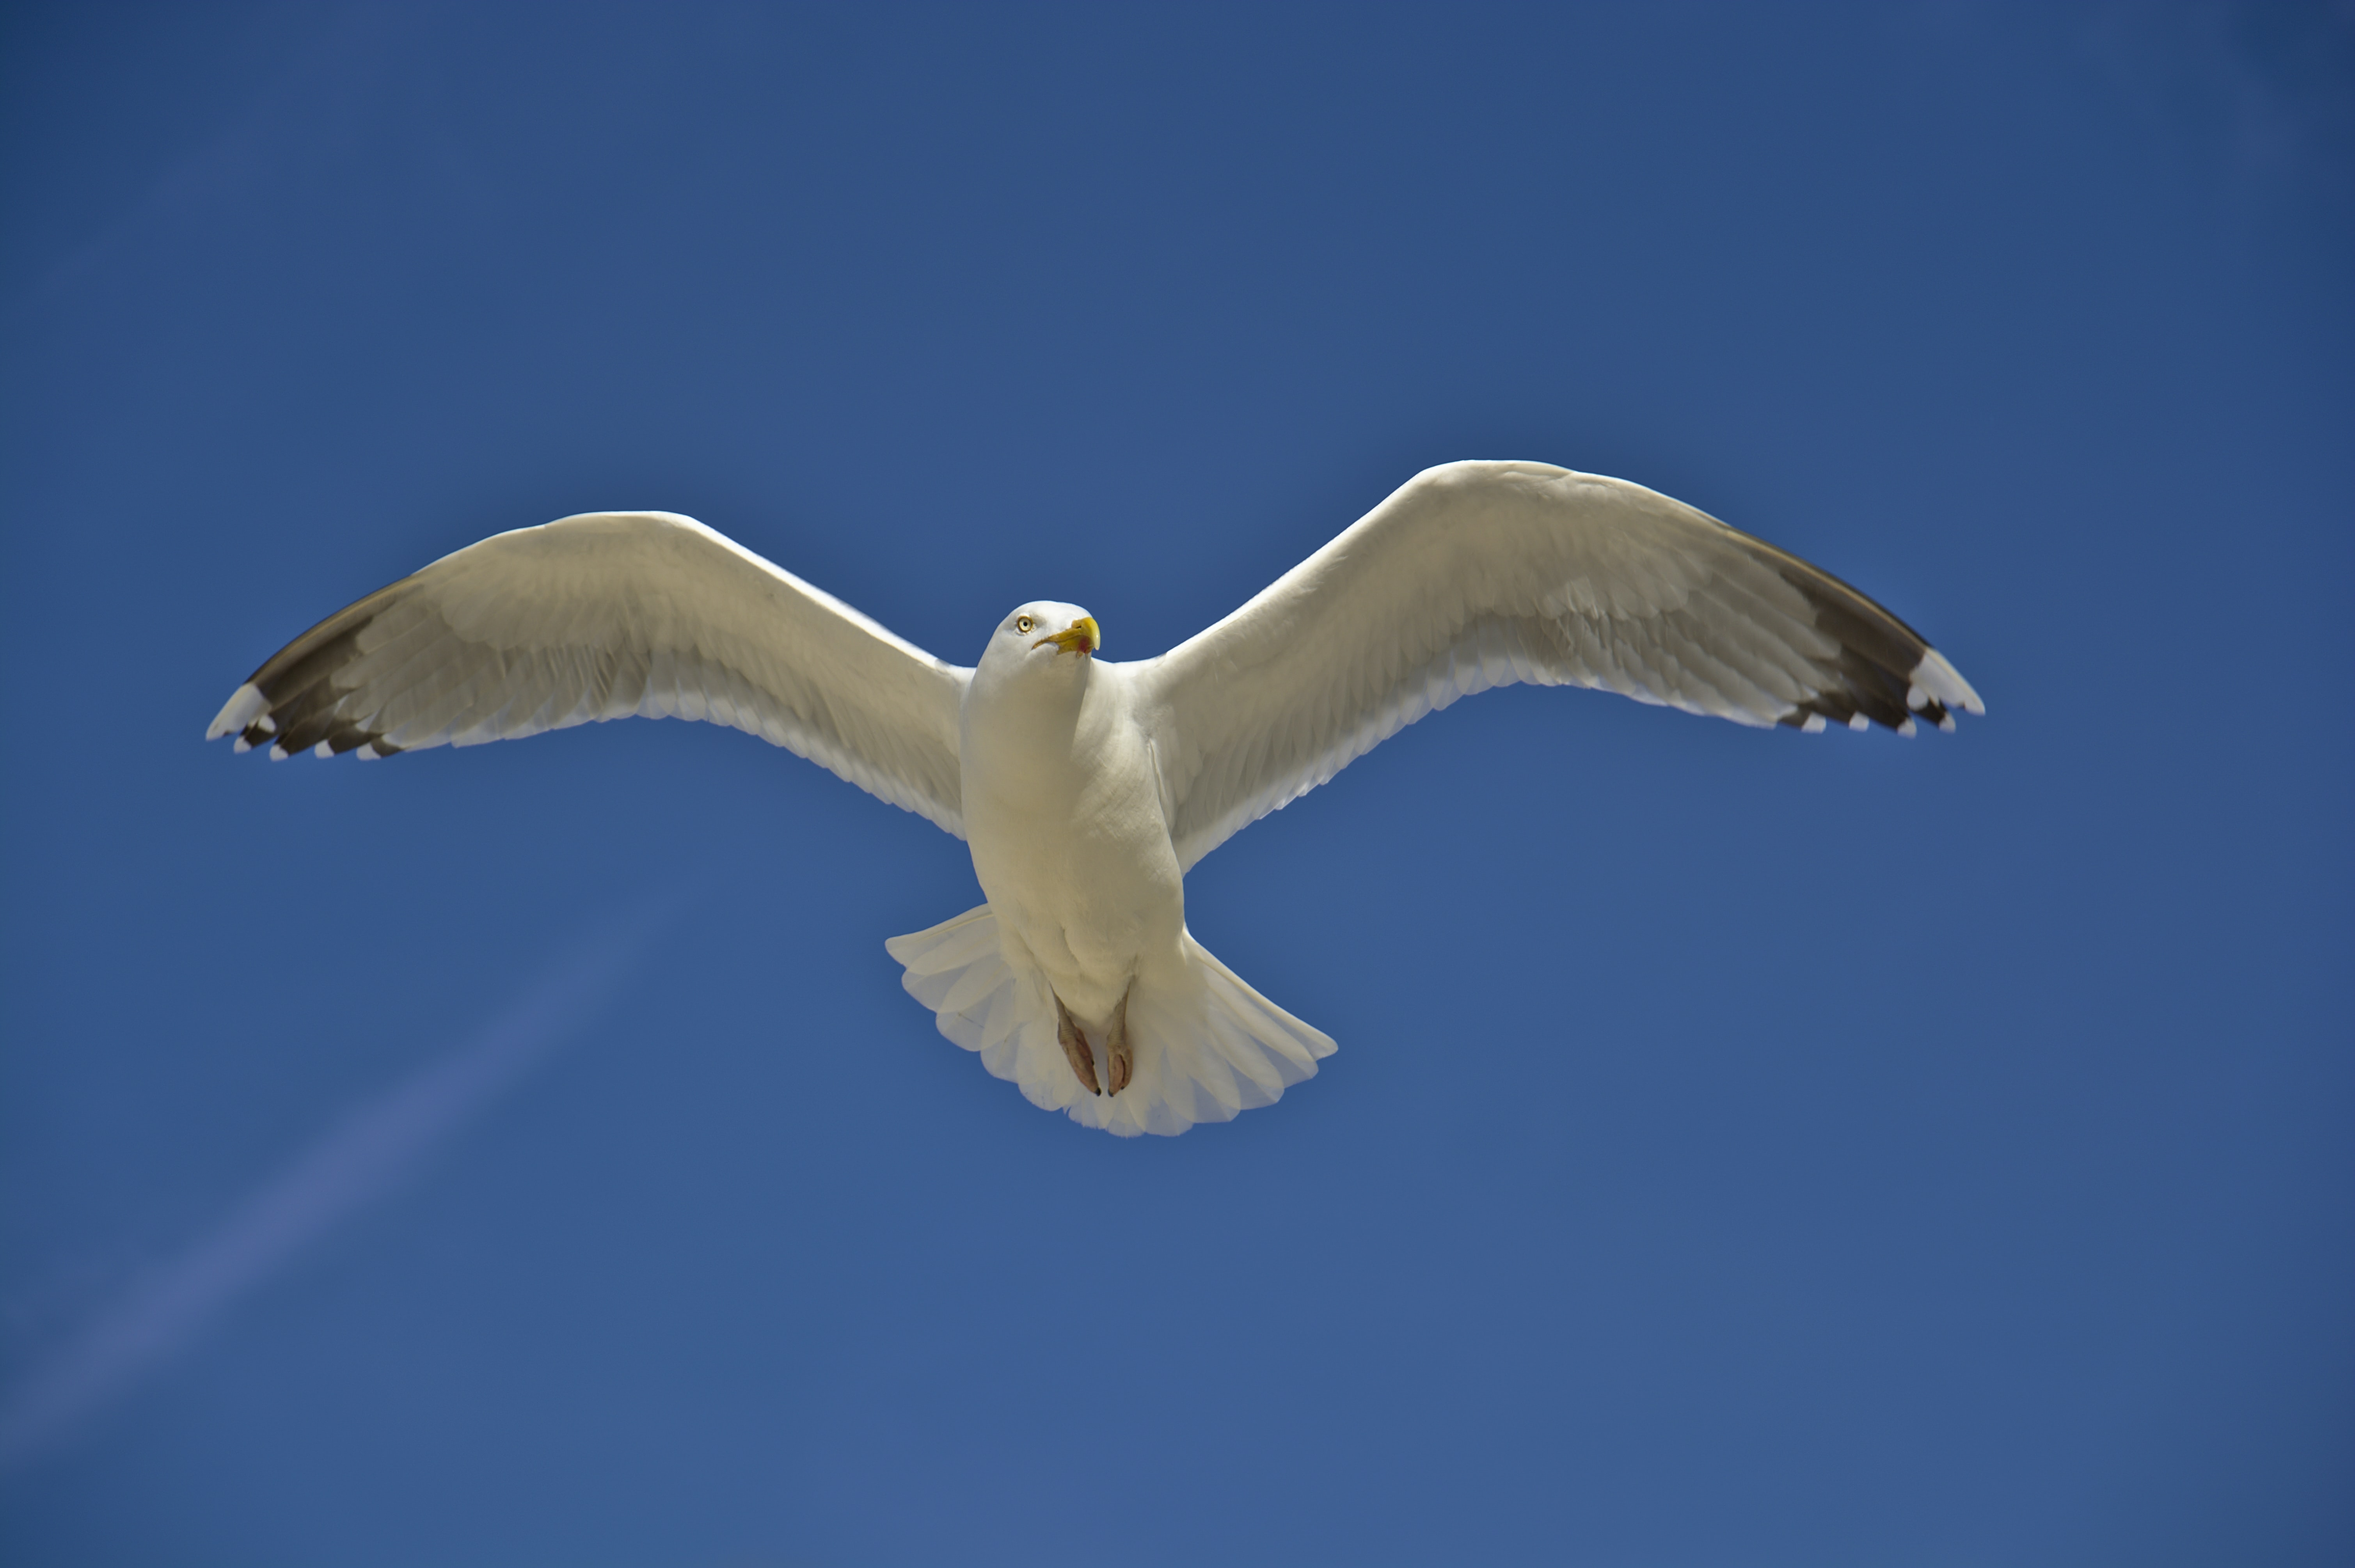 white bird spreading its wings